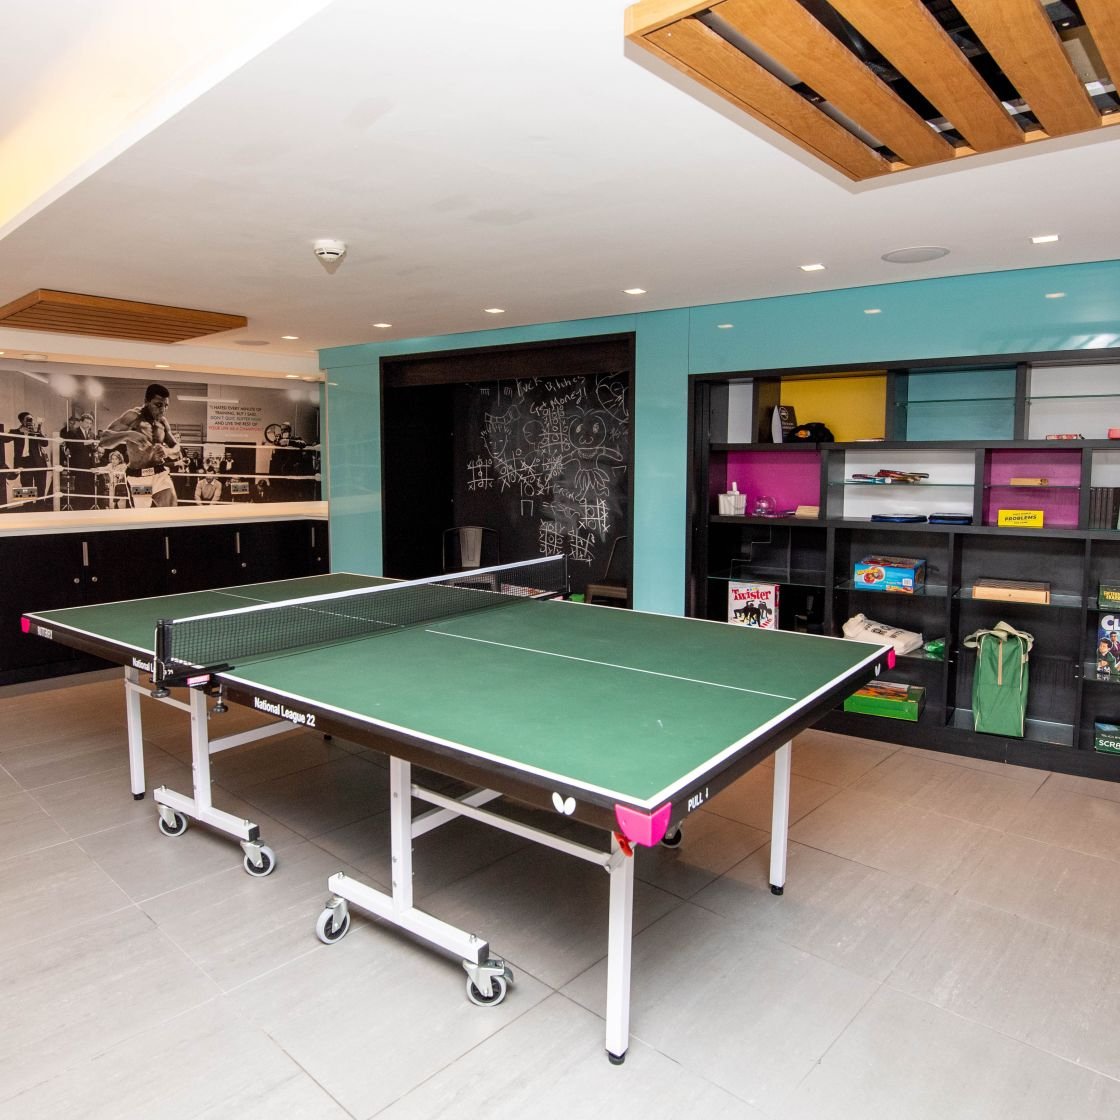 Games area with table tennis. IconInc, The Edge. Student Accommodation in Leeds